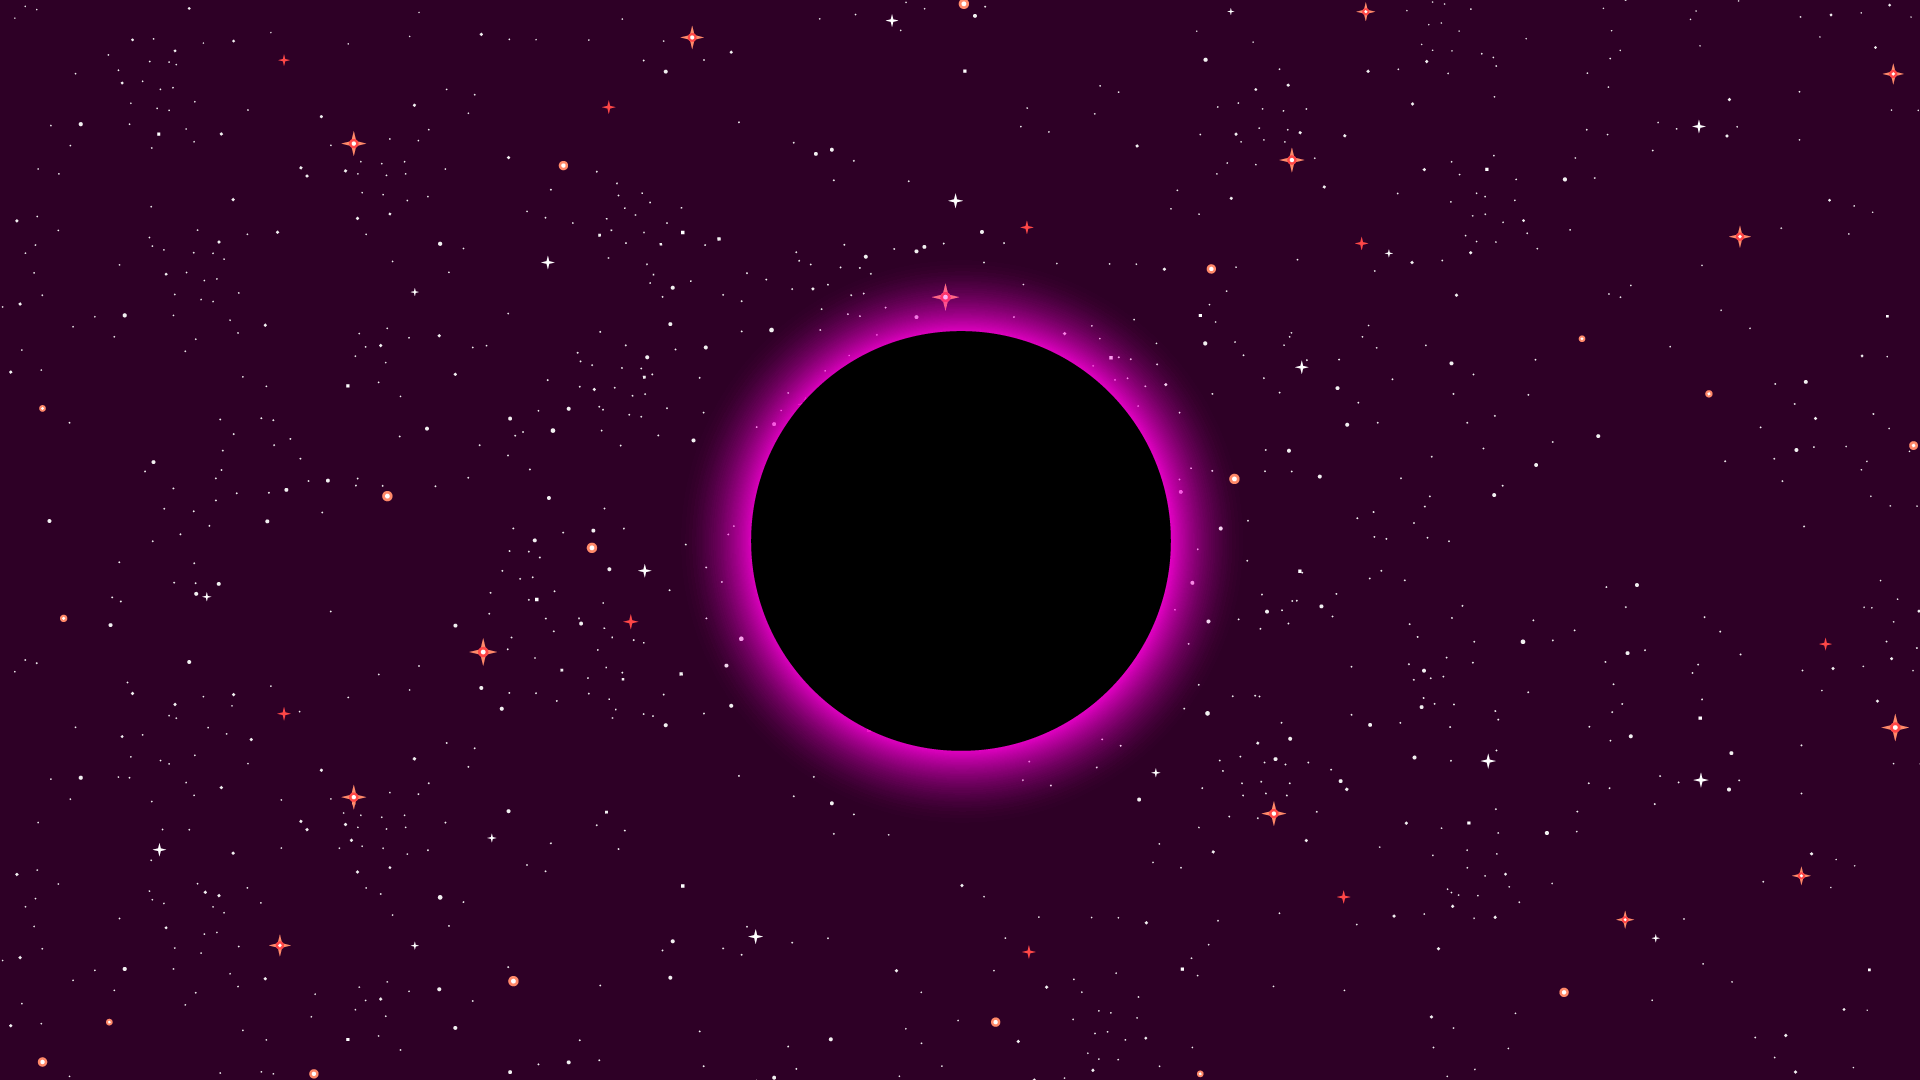 080_Website Project Black Holes_Kurzgesagt Header